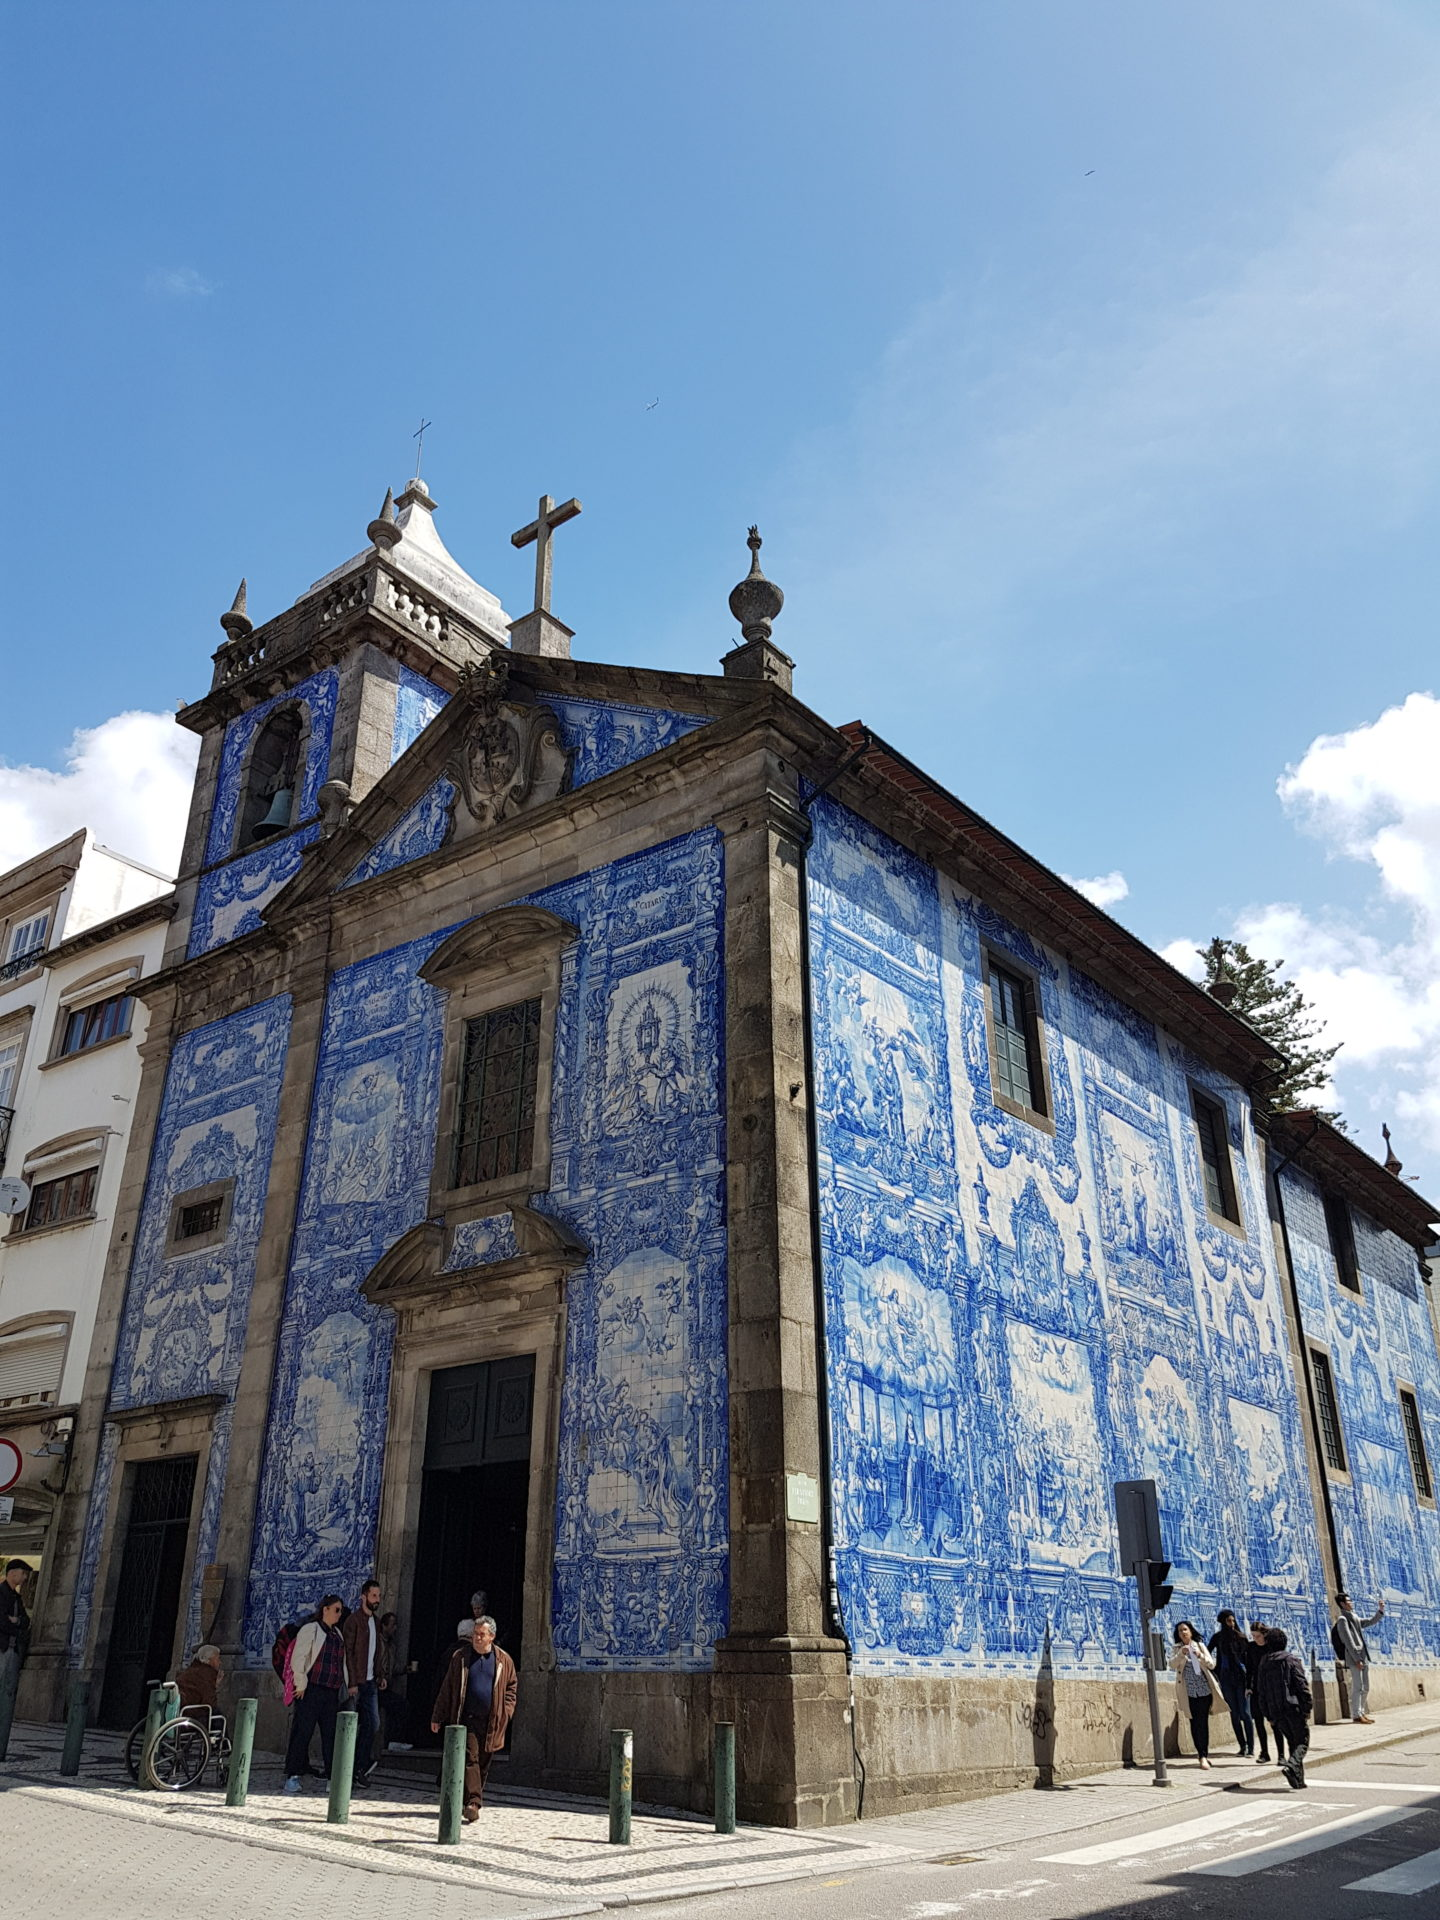 Porto attractions: which should I see in 48 hours?